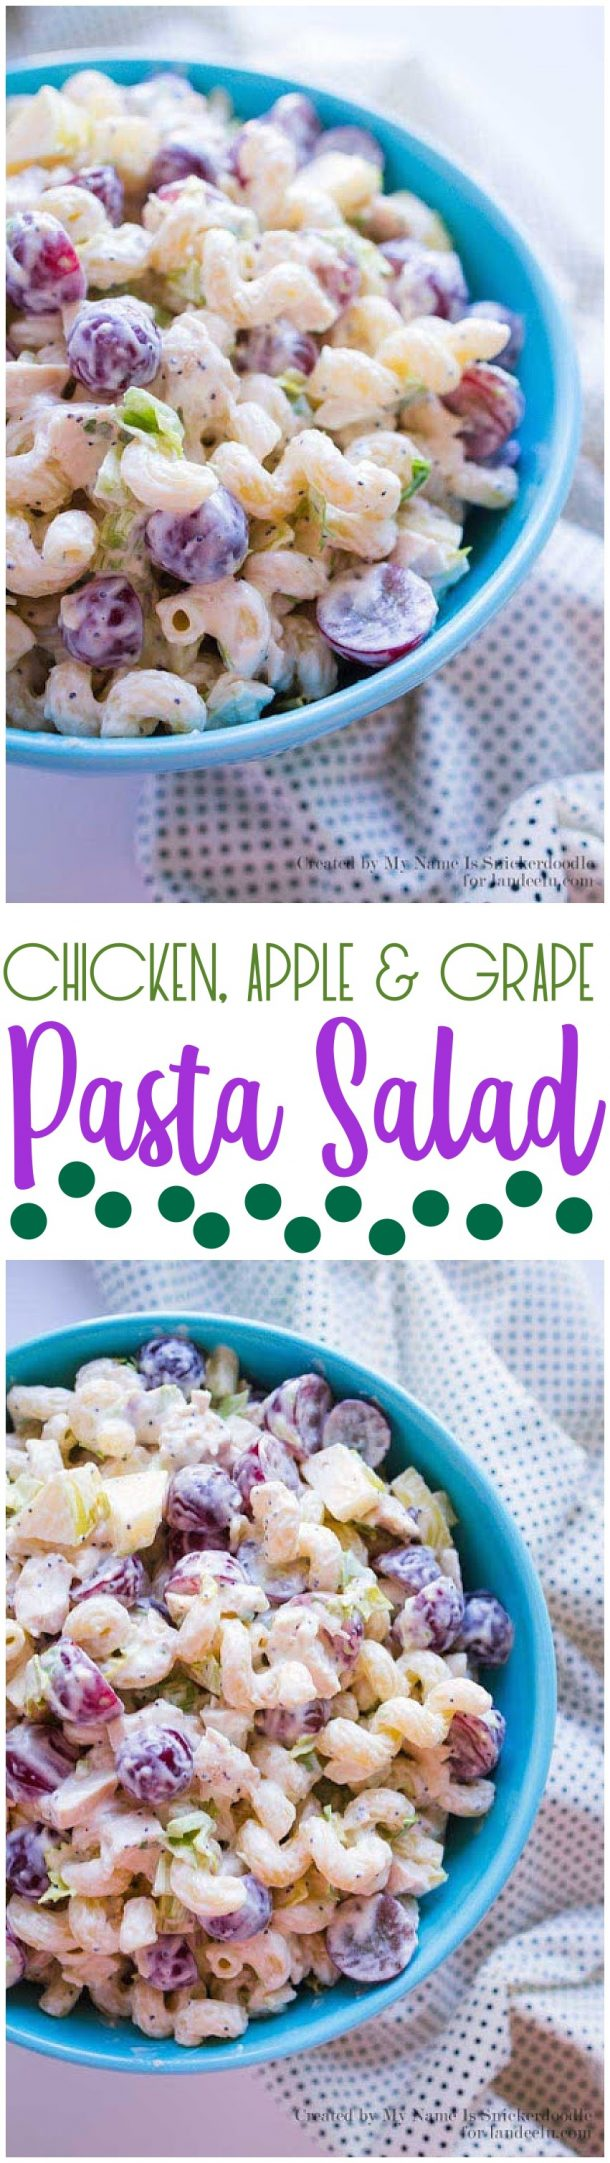 Chicken Apple and Grape Pasta Salad Recipe via Landeelu - A delicious and tangy Chicken Apple Pasta Salad recipe that is definitely a crowd-pleaser!